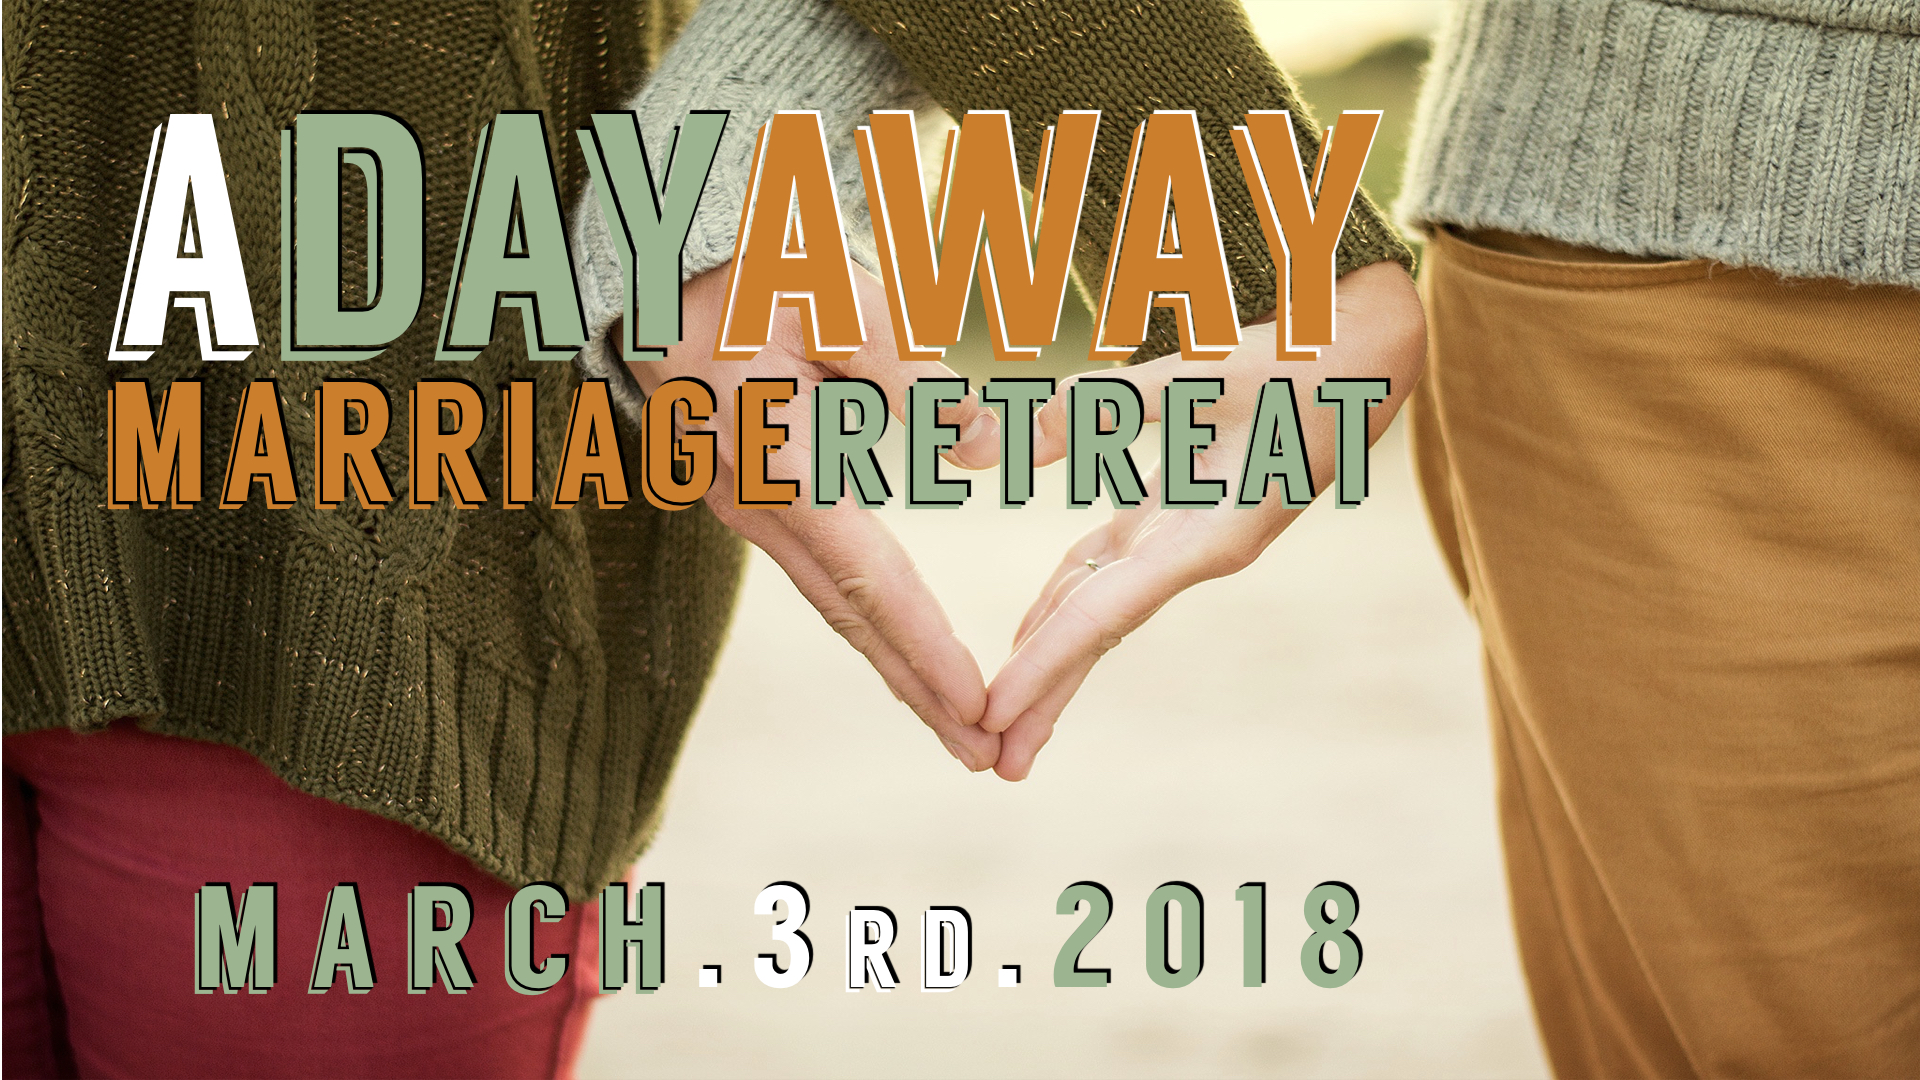 March 3rd, 2018 - Marriage Retreat